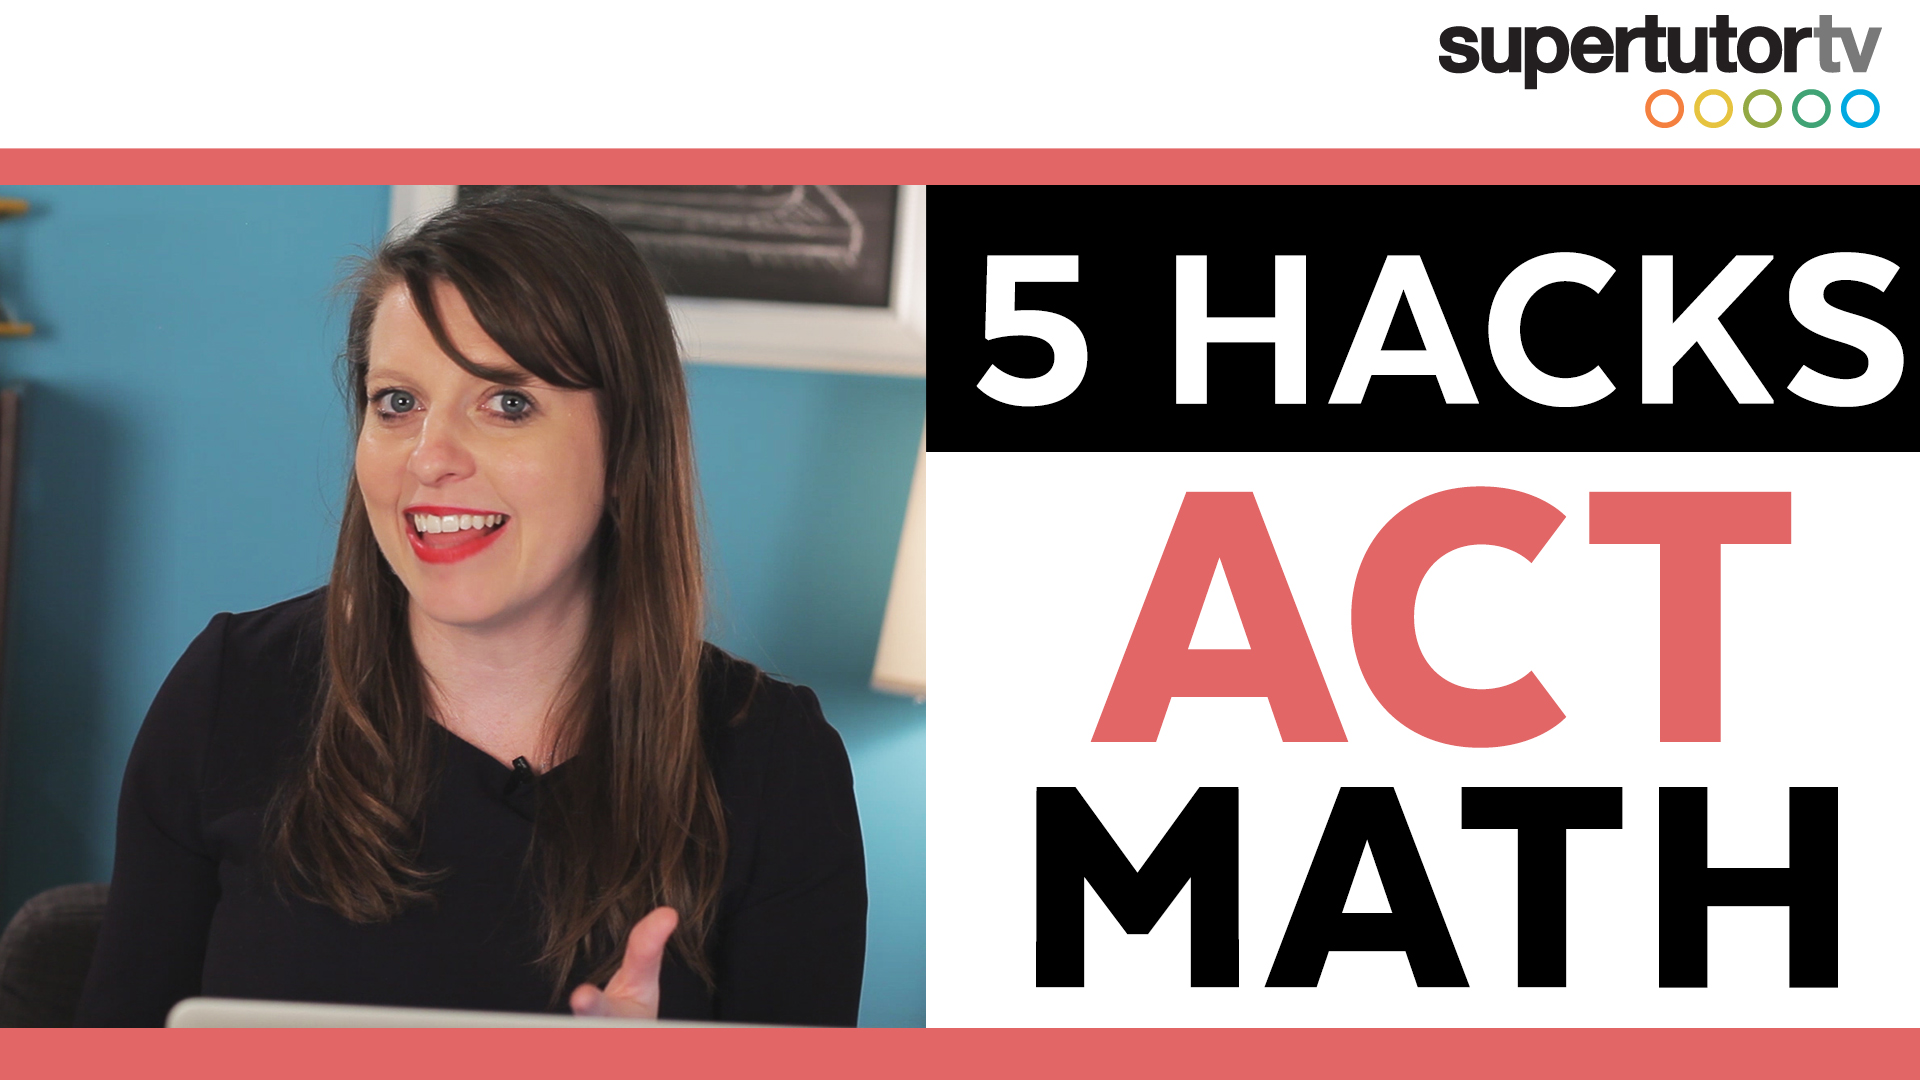 5 Hacks for the ACT Math section